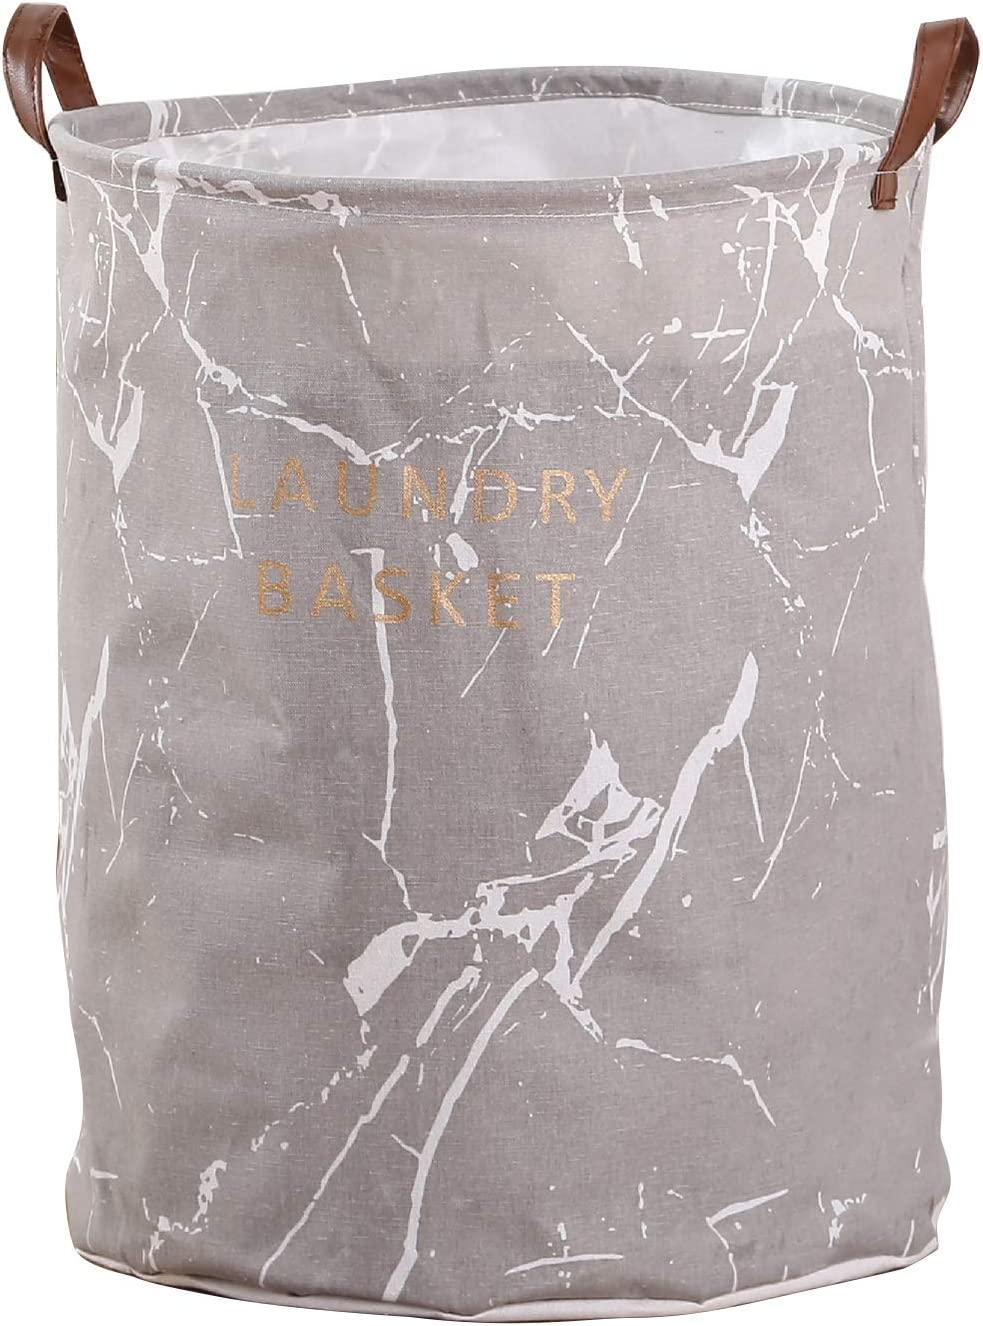 Remelon Home Large Waterproof Laundry Basket Laundry Hamper Collapsible Round Cotton Linen Clothes Laundry Bucket with Handles Marble Printing Household Organizer Basket Gray